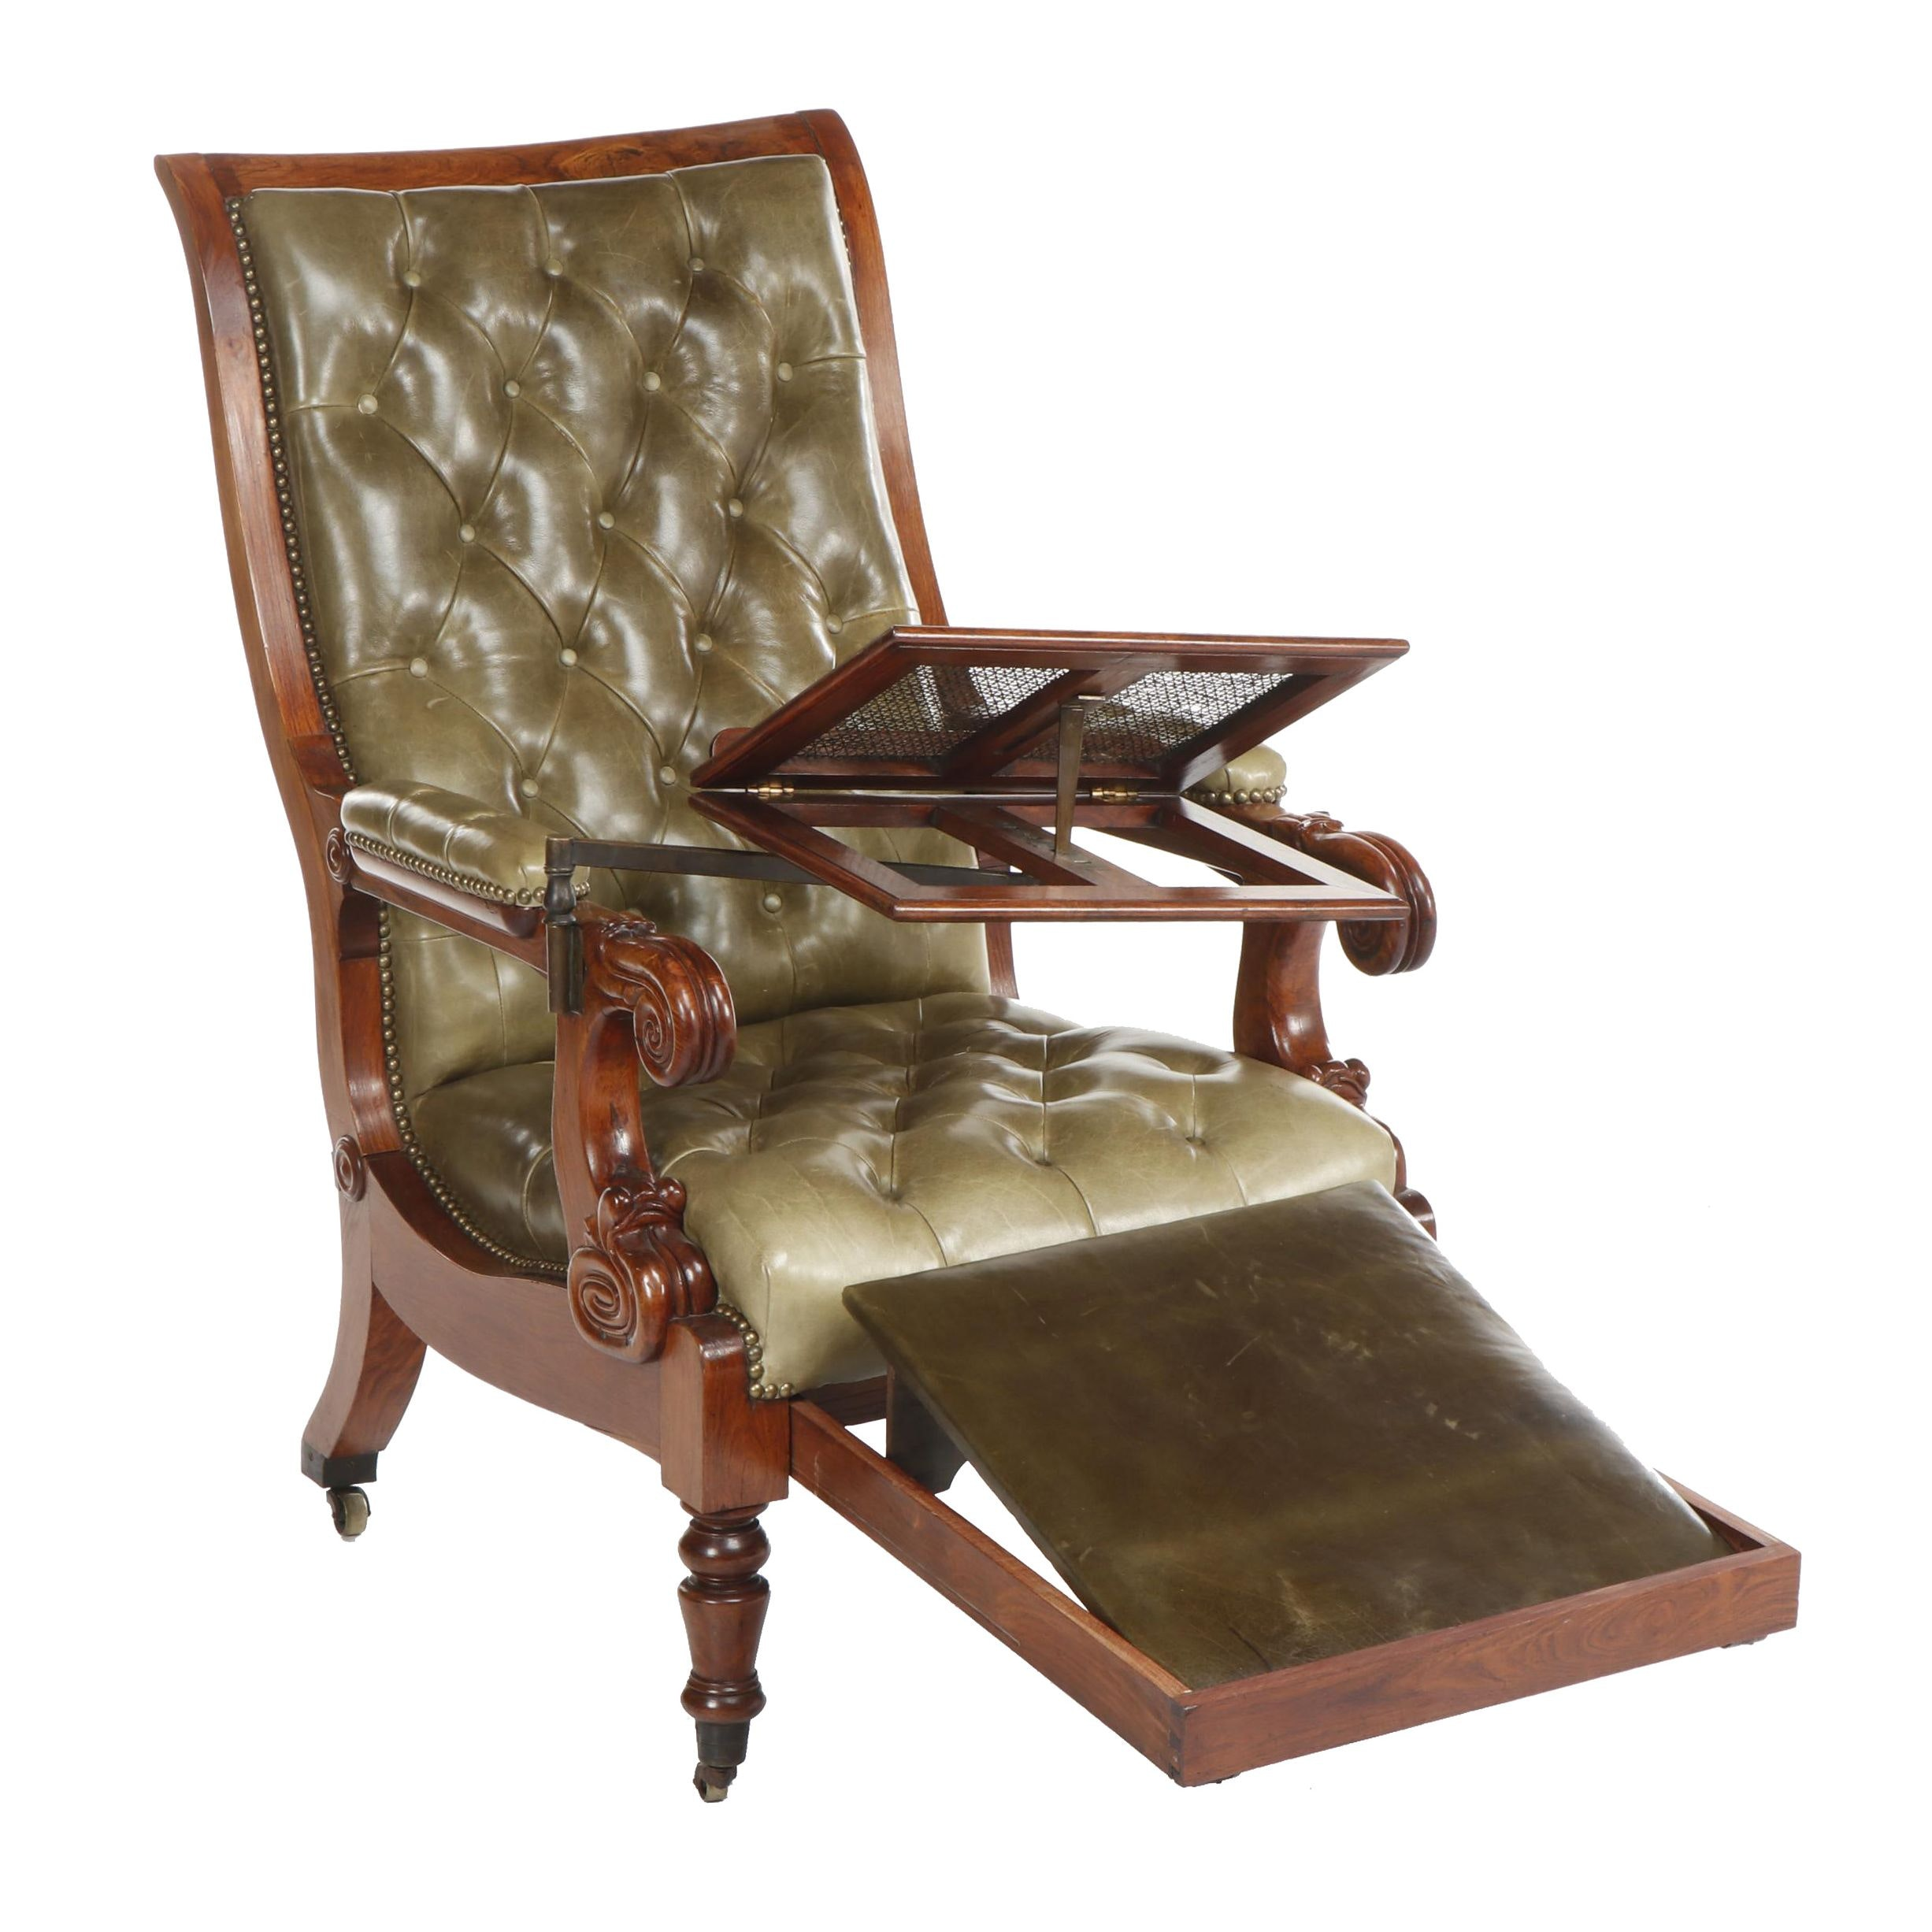 George IV Walnut Tufted Leather Reading Armchair with Footrest, Circa 1840